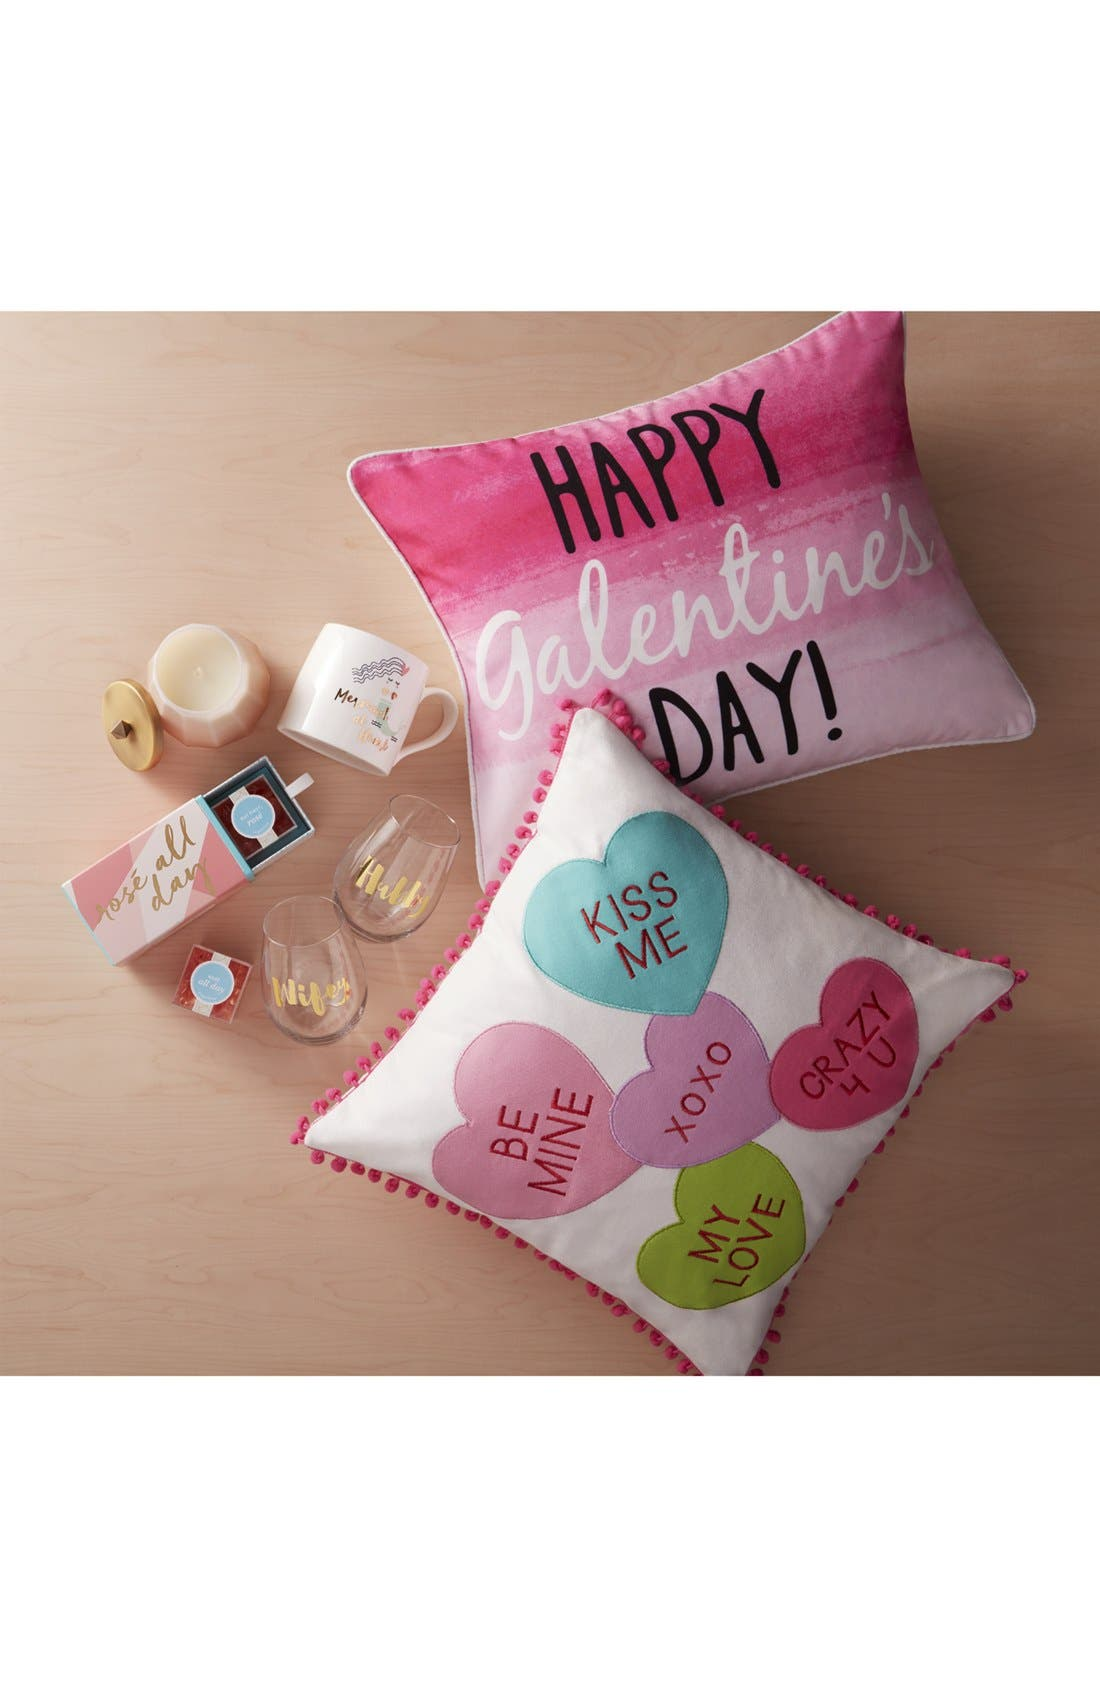 Happy Galentine's Day Pillow,                             Alternate thumbnail 4, color,